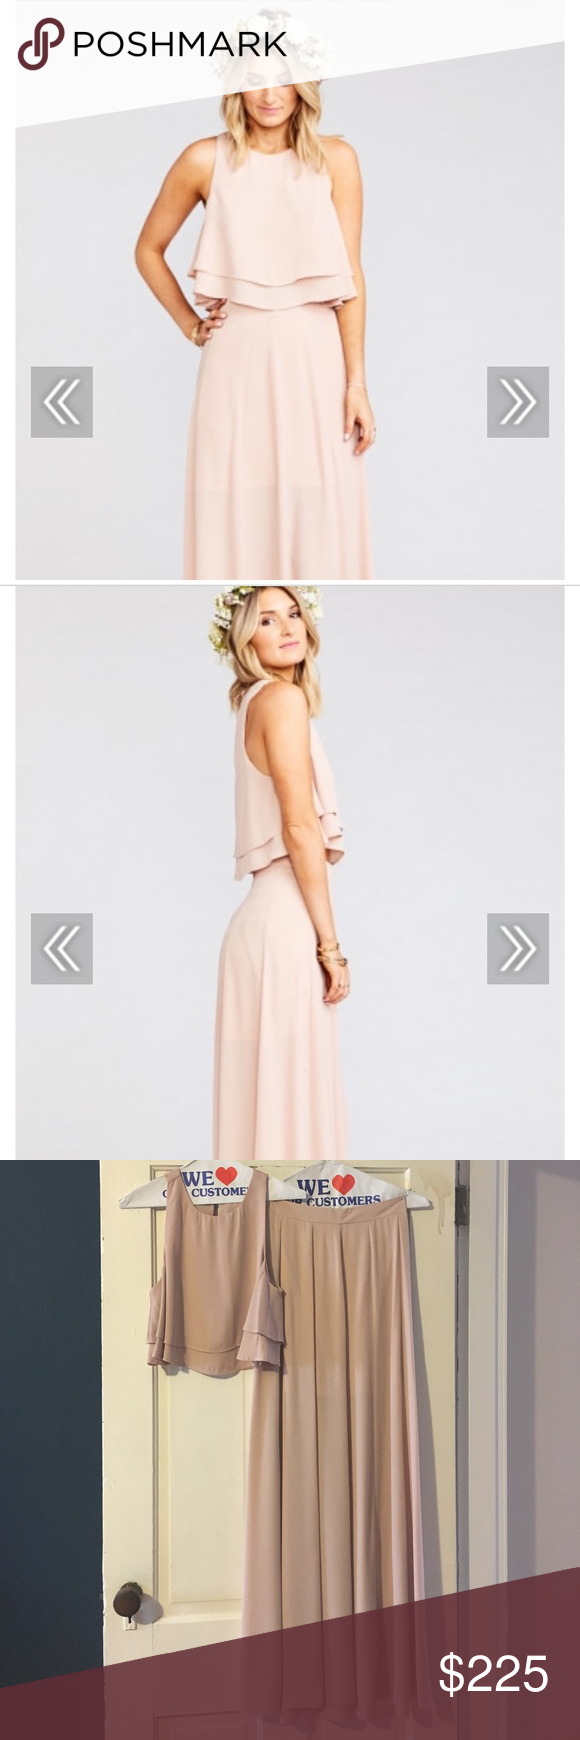 6f9e3ece0a3 Show Me Your MuMu two piece Bridesmaid Dress Dusty blush crisp King crop top  & Ariel ball gown maxi skirt. Wore this once in a wedding and had it dry ...